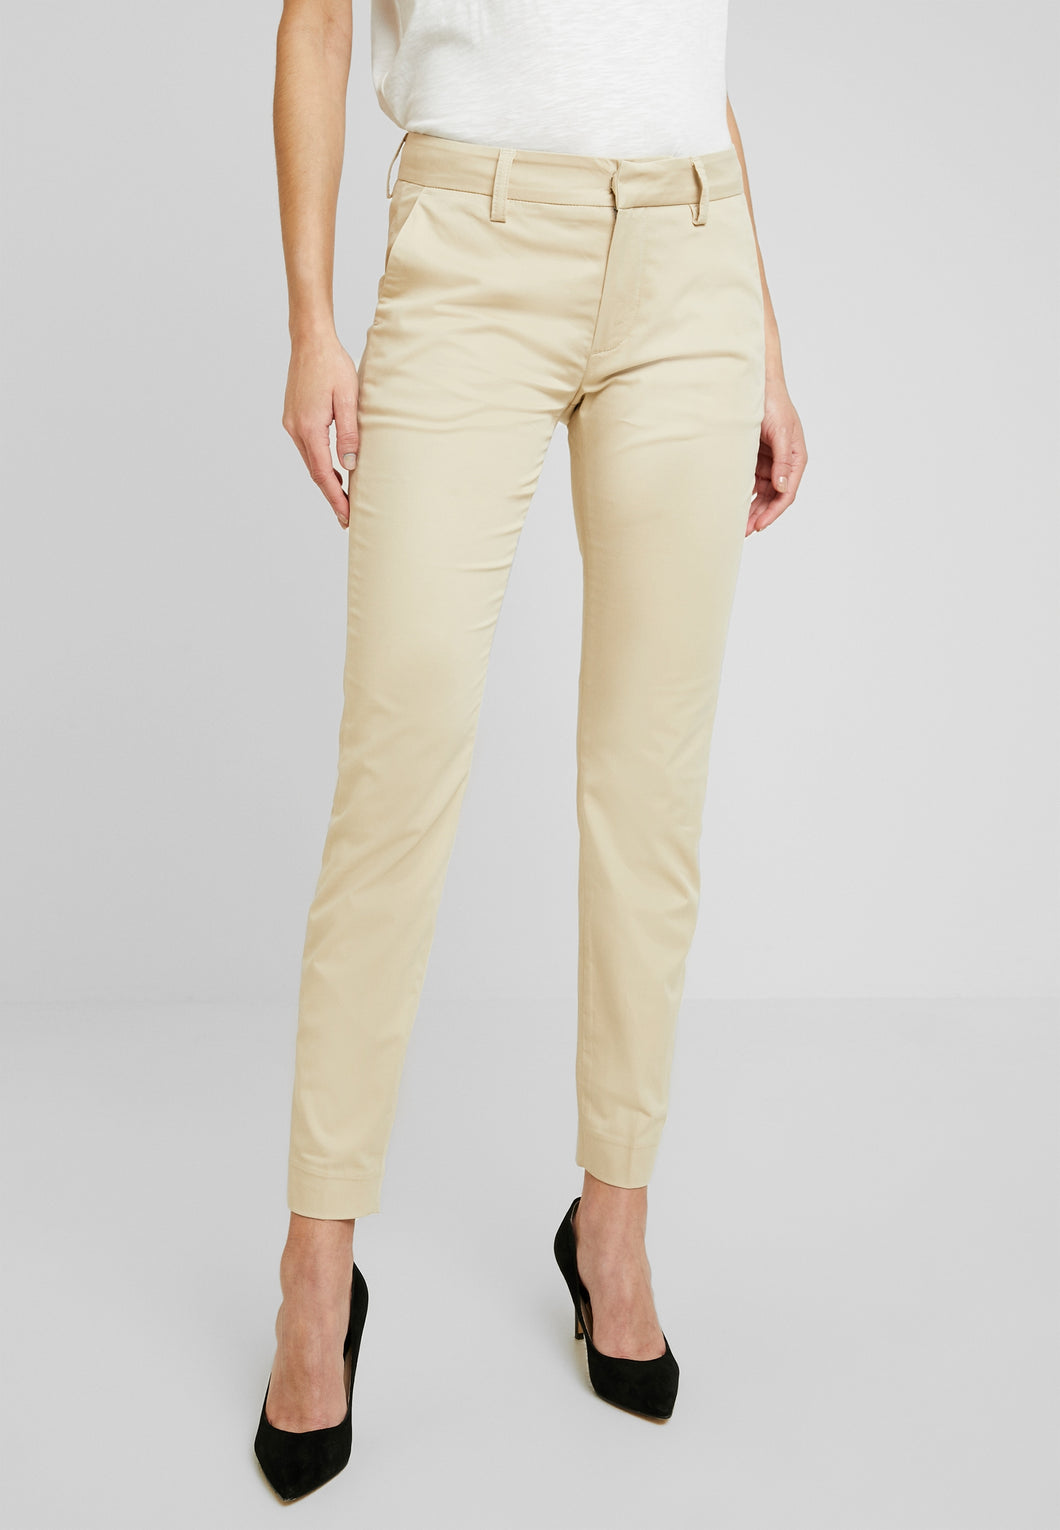 ABBEY COLE ANKLE PANT - safari